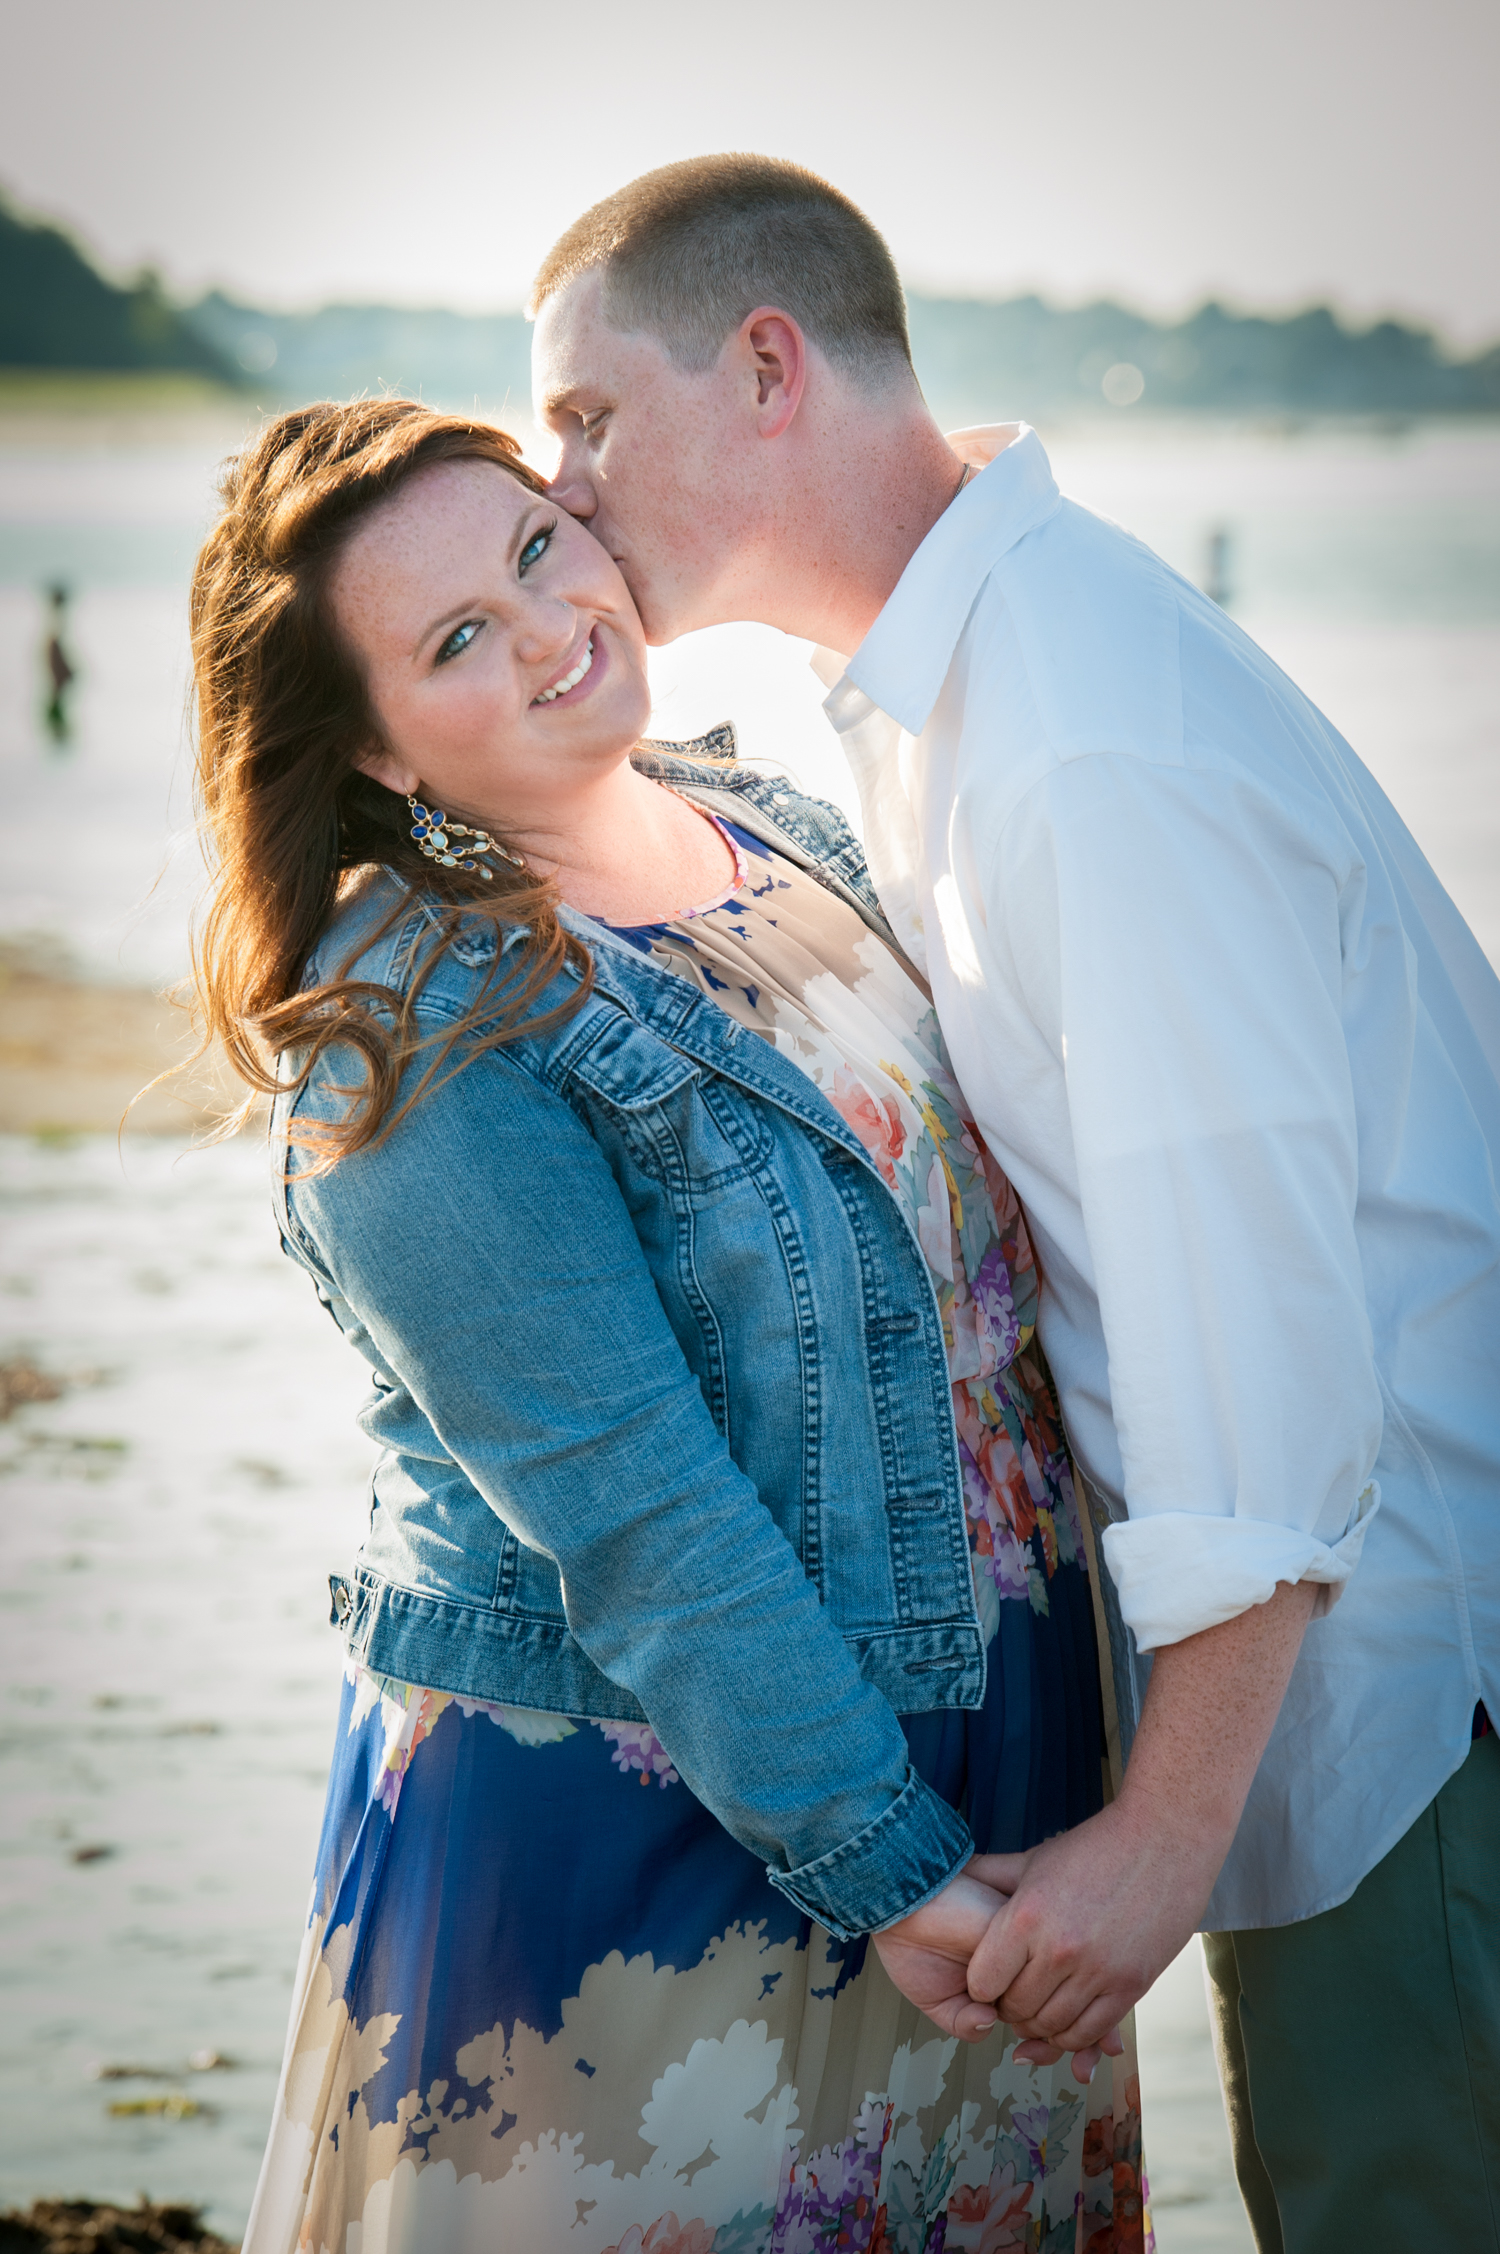 Rochester Engagement Photography 015.jpg